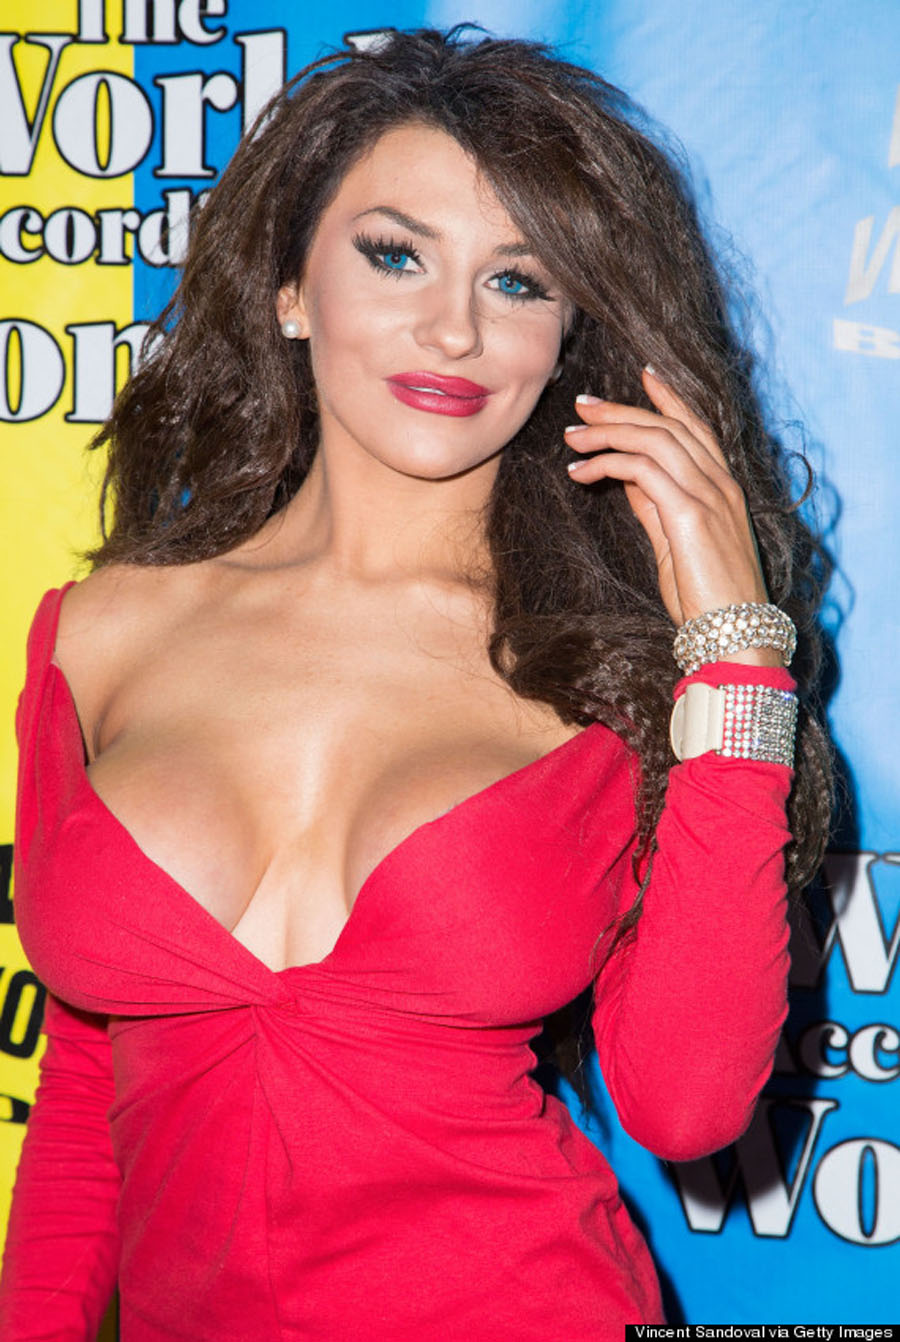 Celebrity Big Brother' Star Courtney Stodden Debuts New Brunette Locks And Almost Falls Out Of Her Dress At Awards Bash 48851